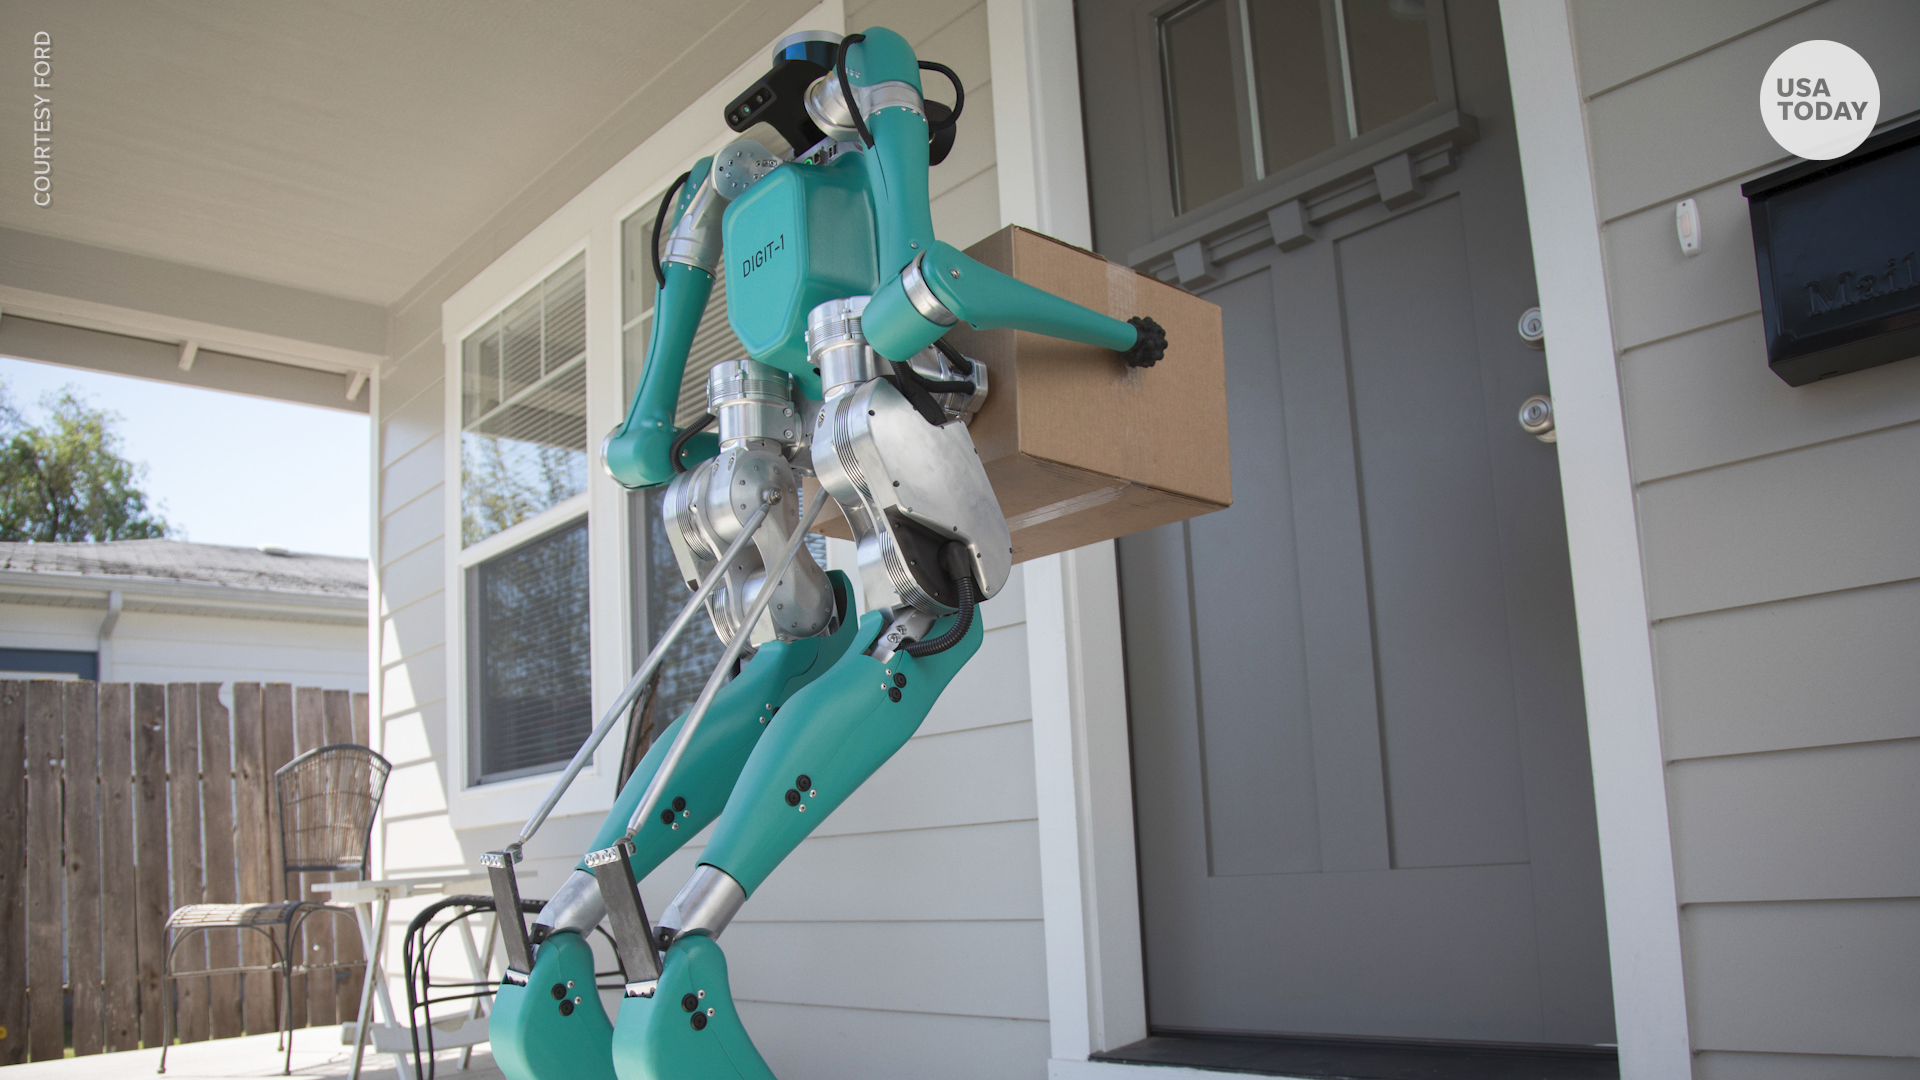 This robot could start delivering packages to your door